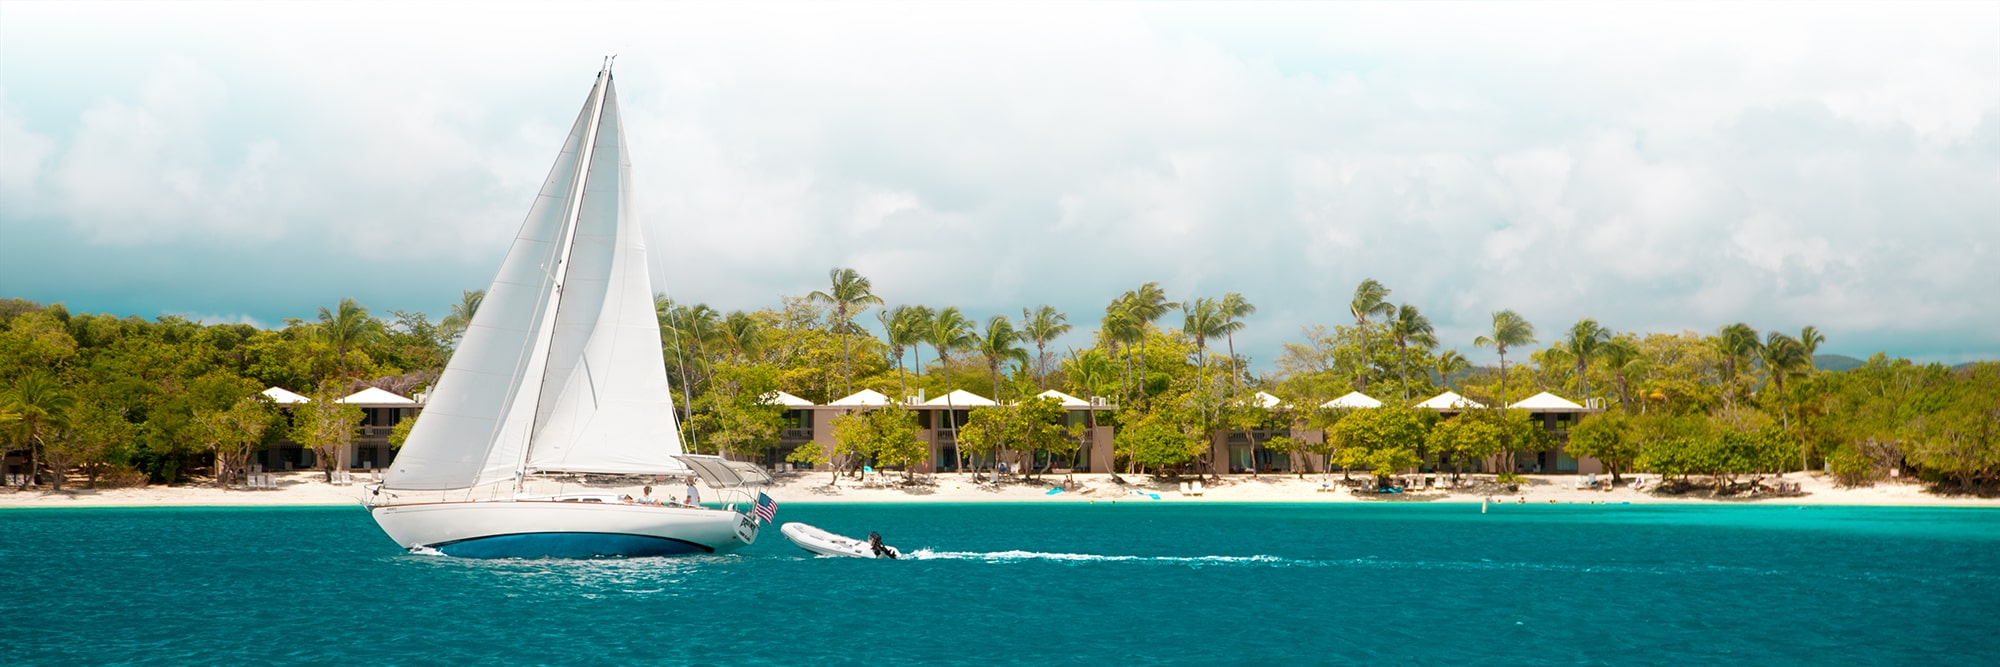 panoramic view of a sloop under full sails sailing close by Caneel Bay, St.John, US Virgin Islands